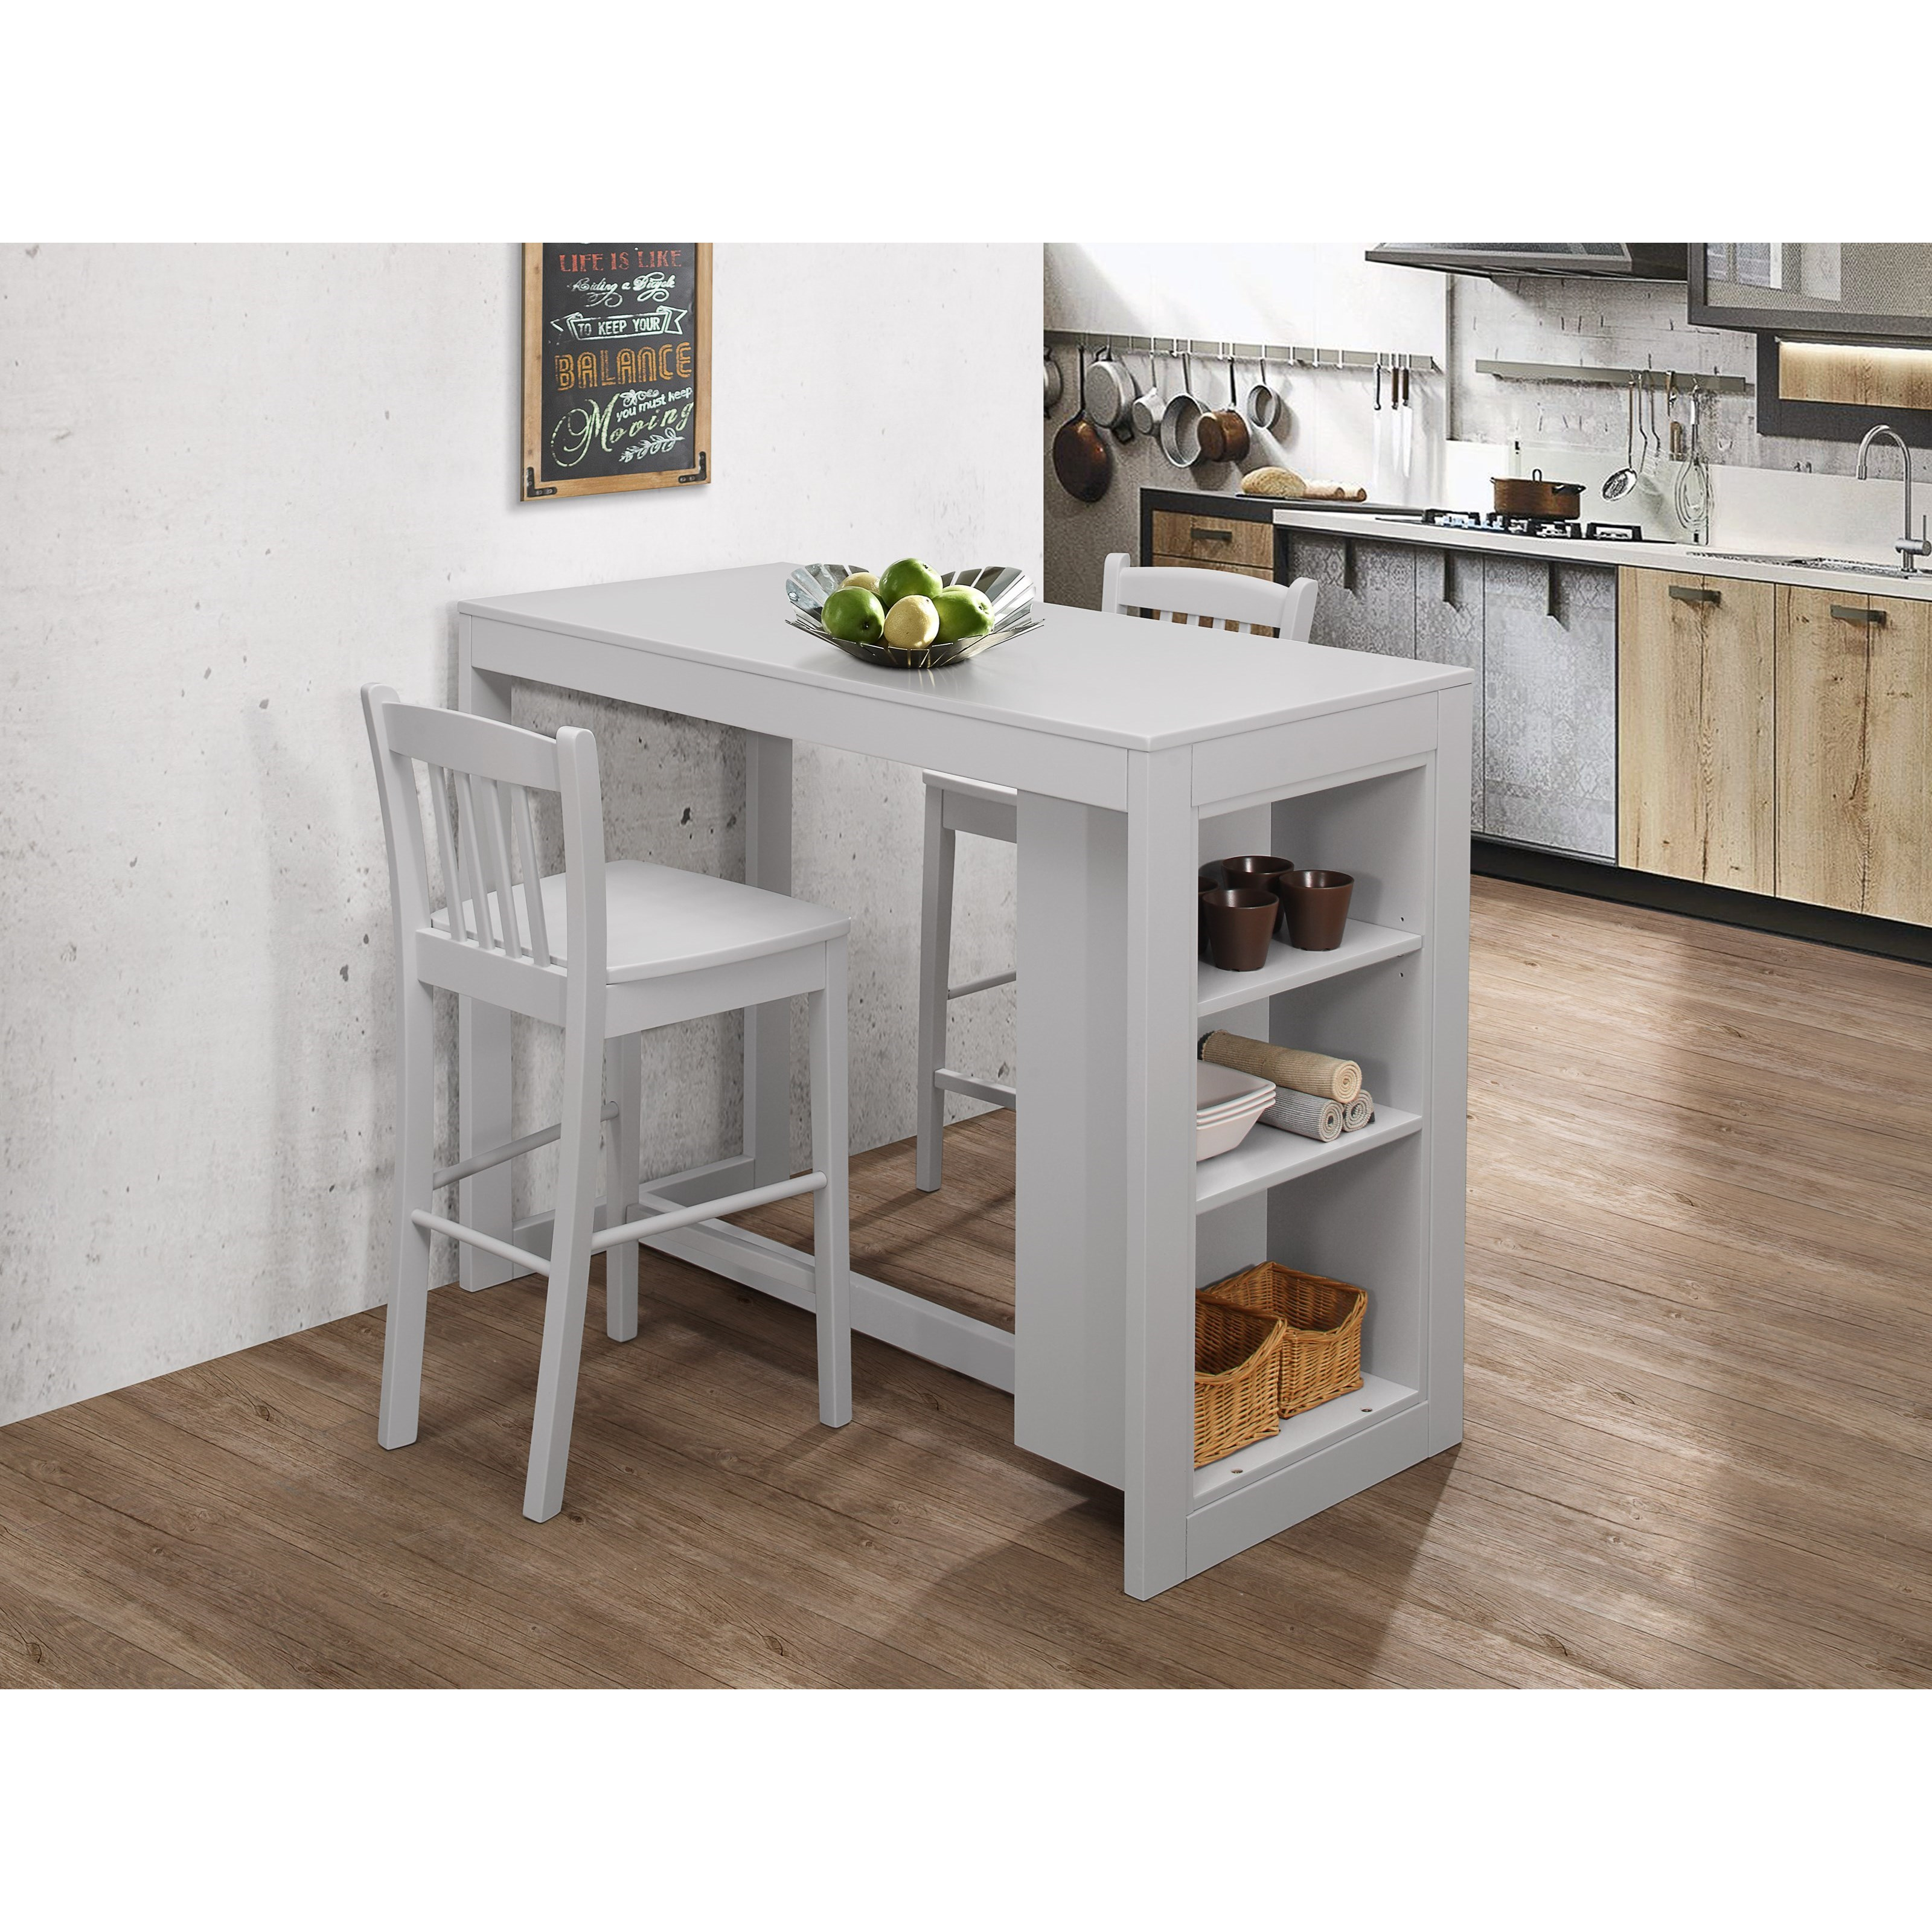 Newcastle Counter Height Dining Table 2 Chairs 2 Stools: Jofran Tribeca Counter Height Table With 2 Chairs